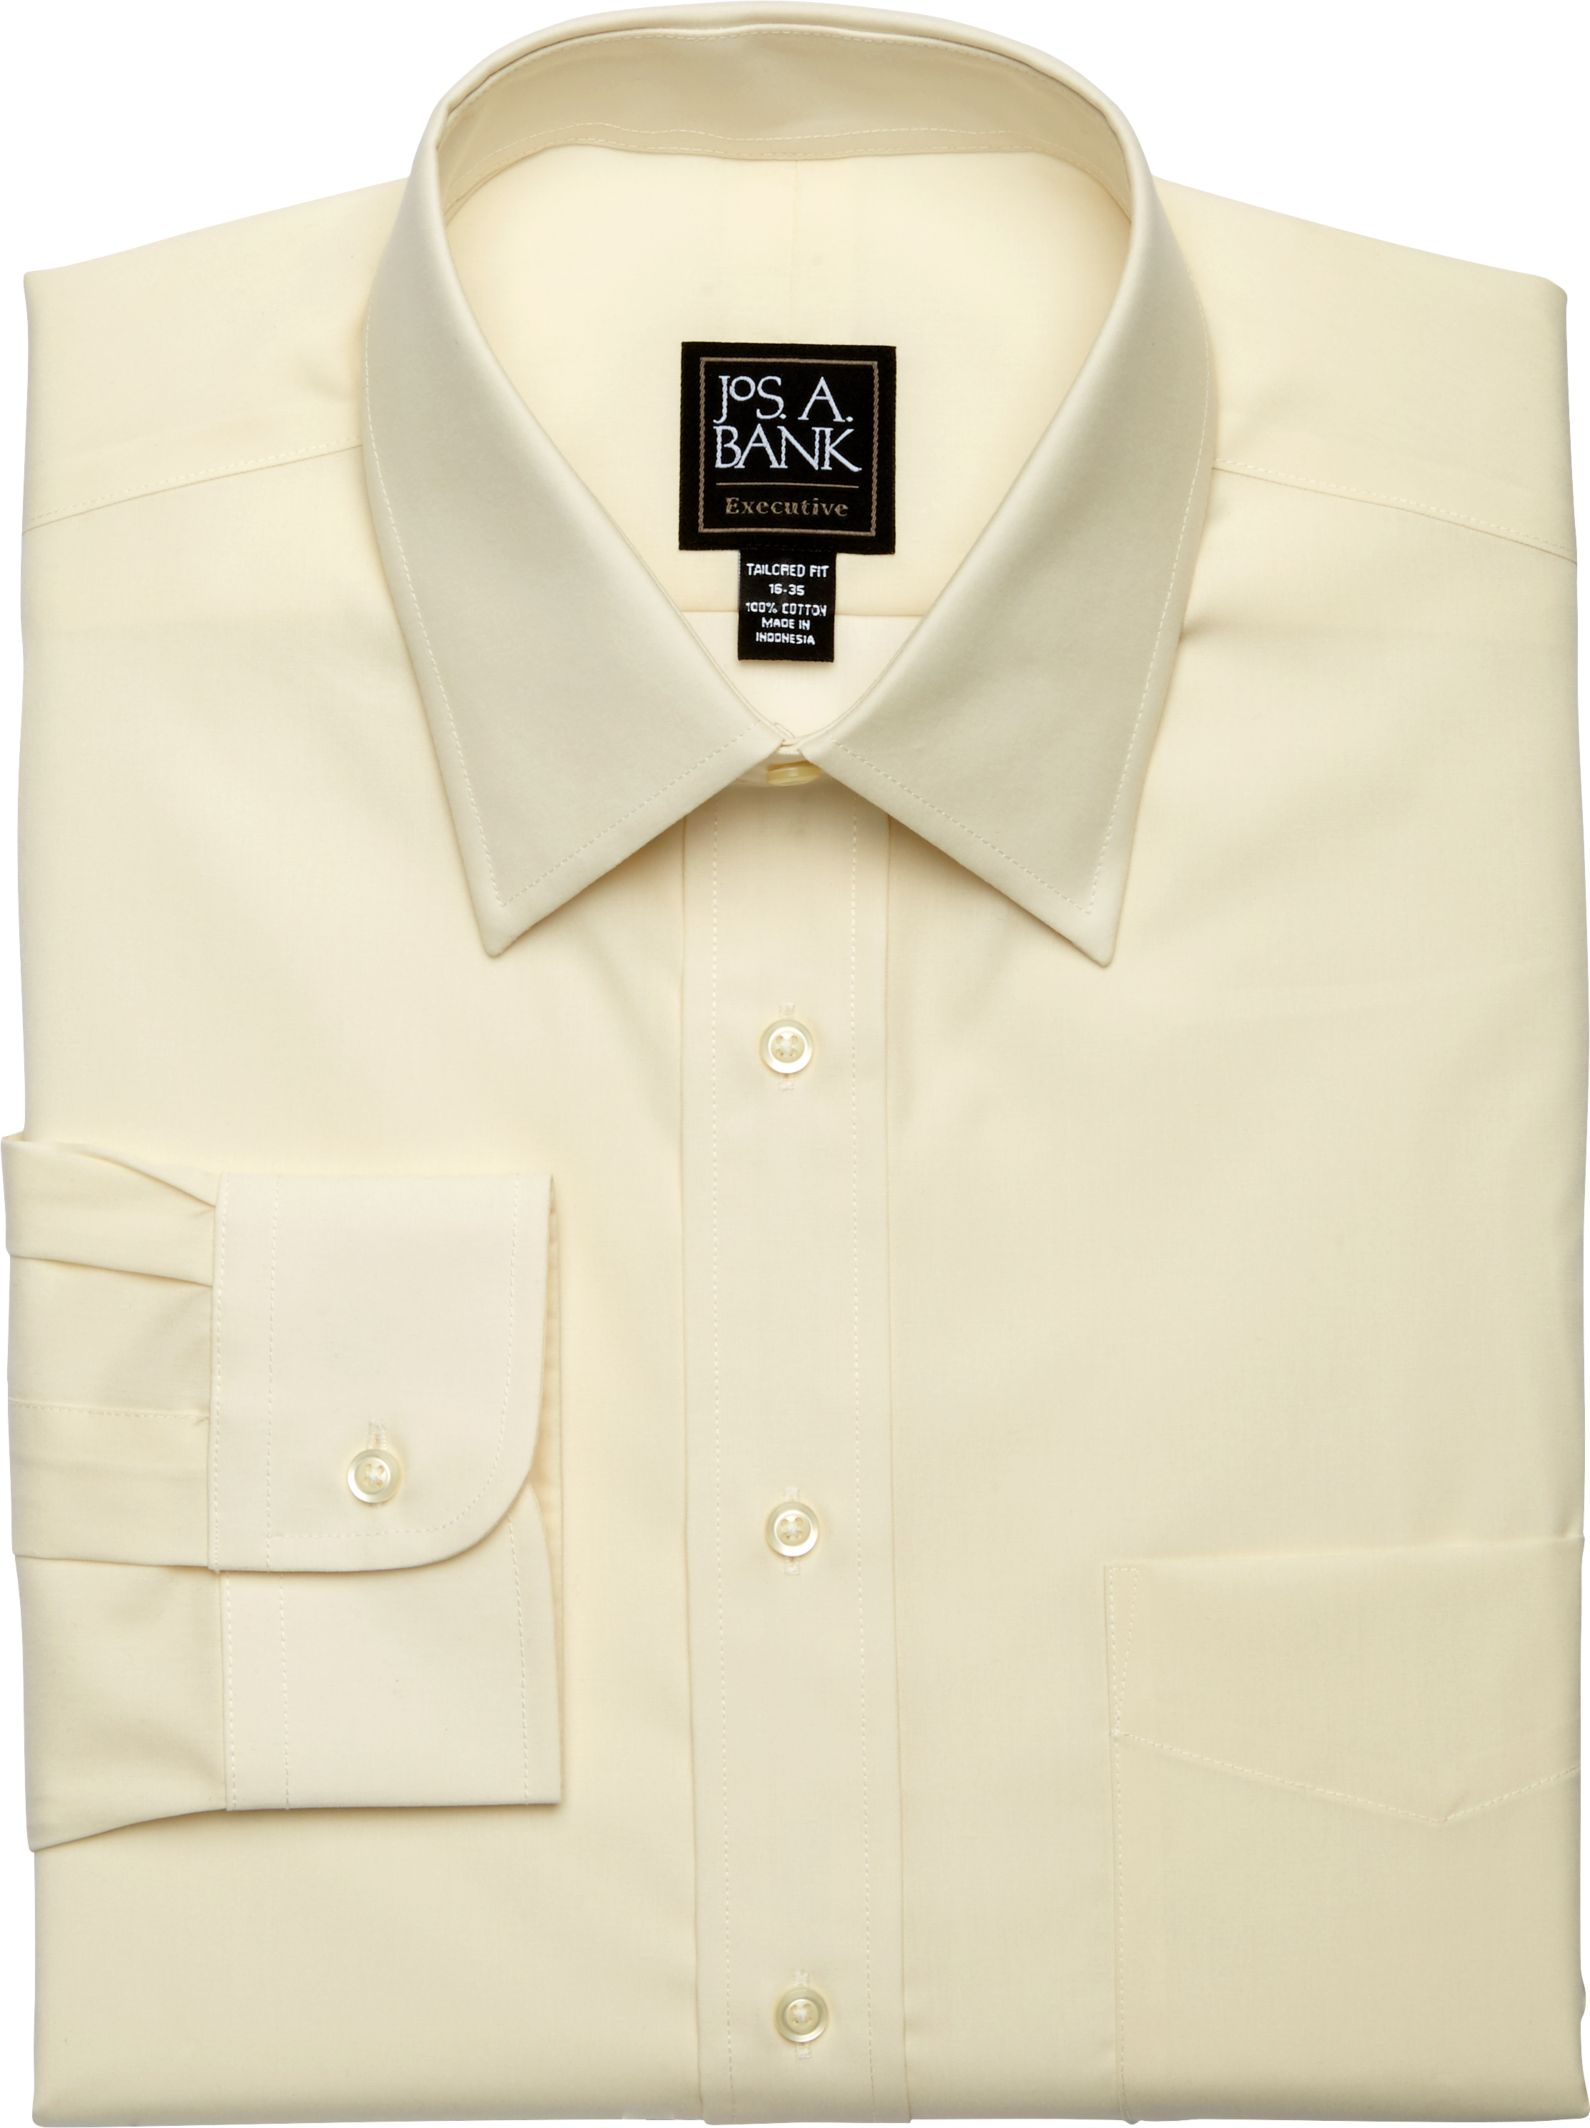 12 month white dress shirt